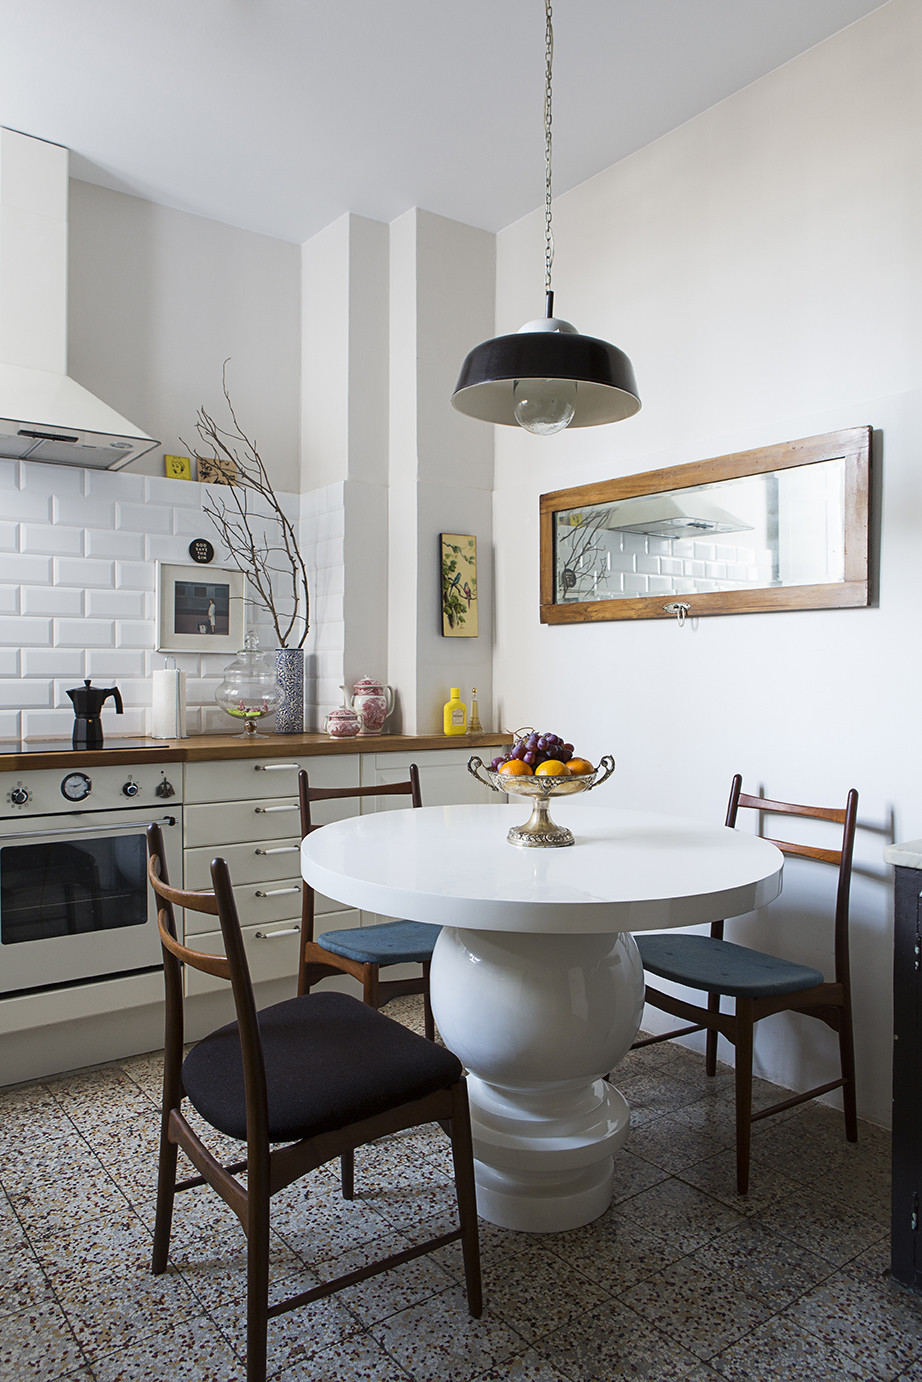 Ten Tips: A Barcelona Apartment Where Midcentury and Antique Collide